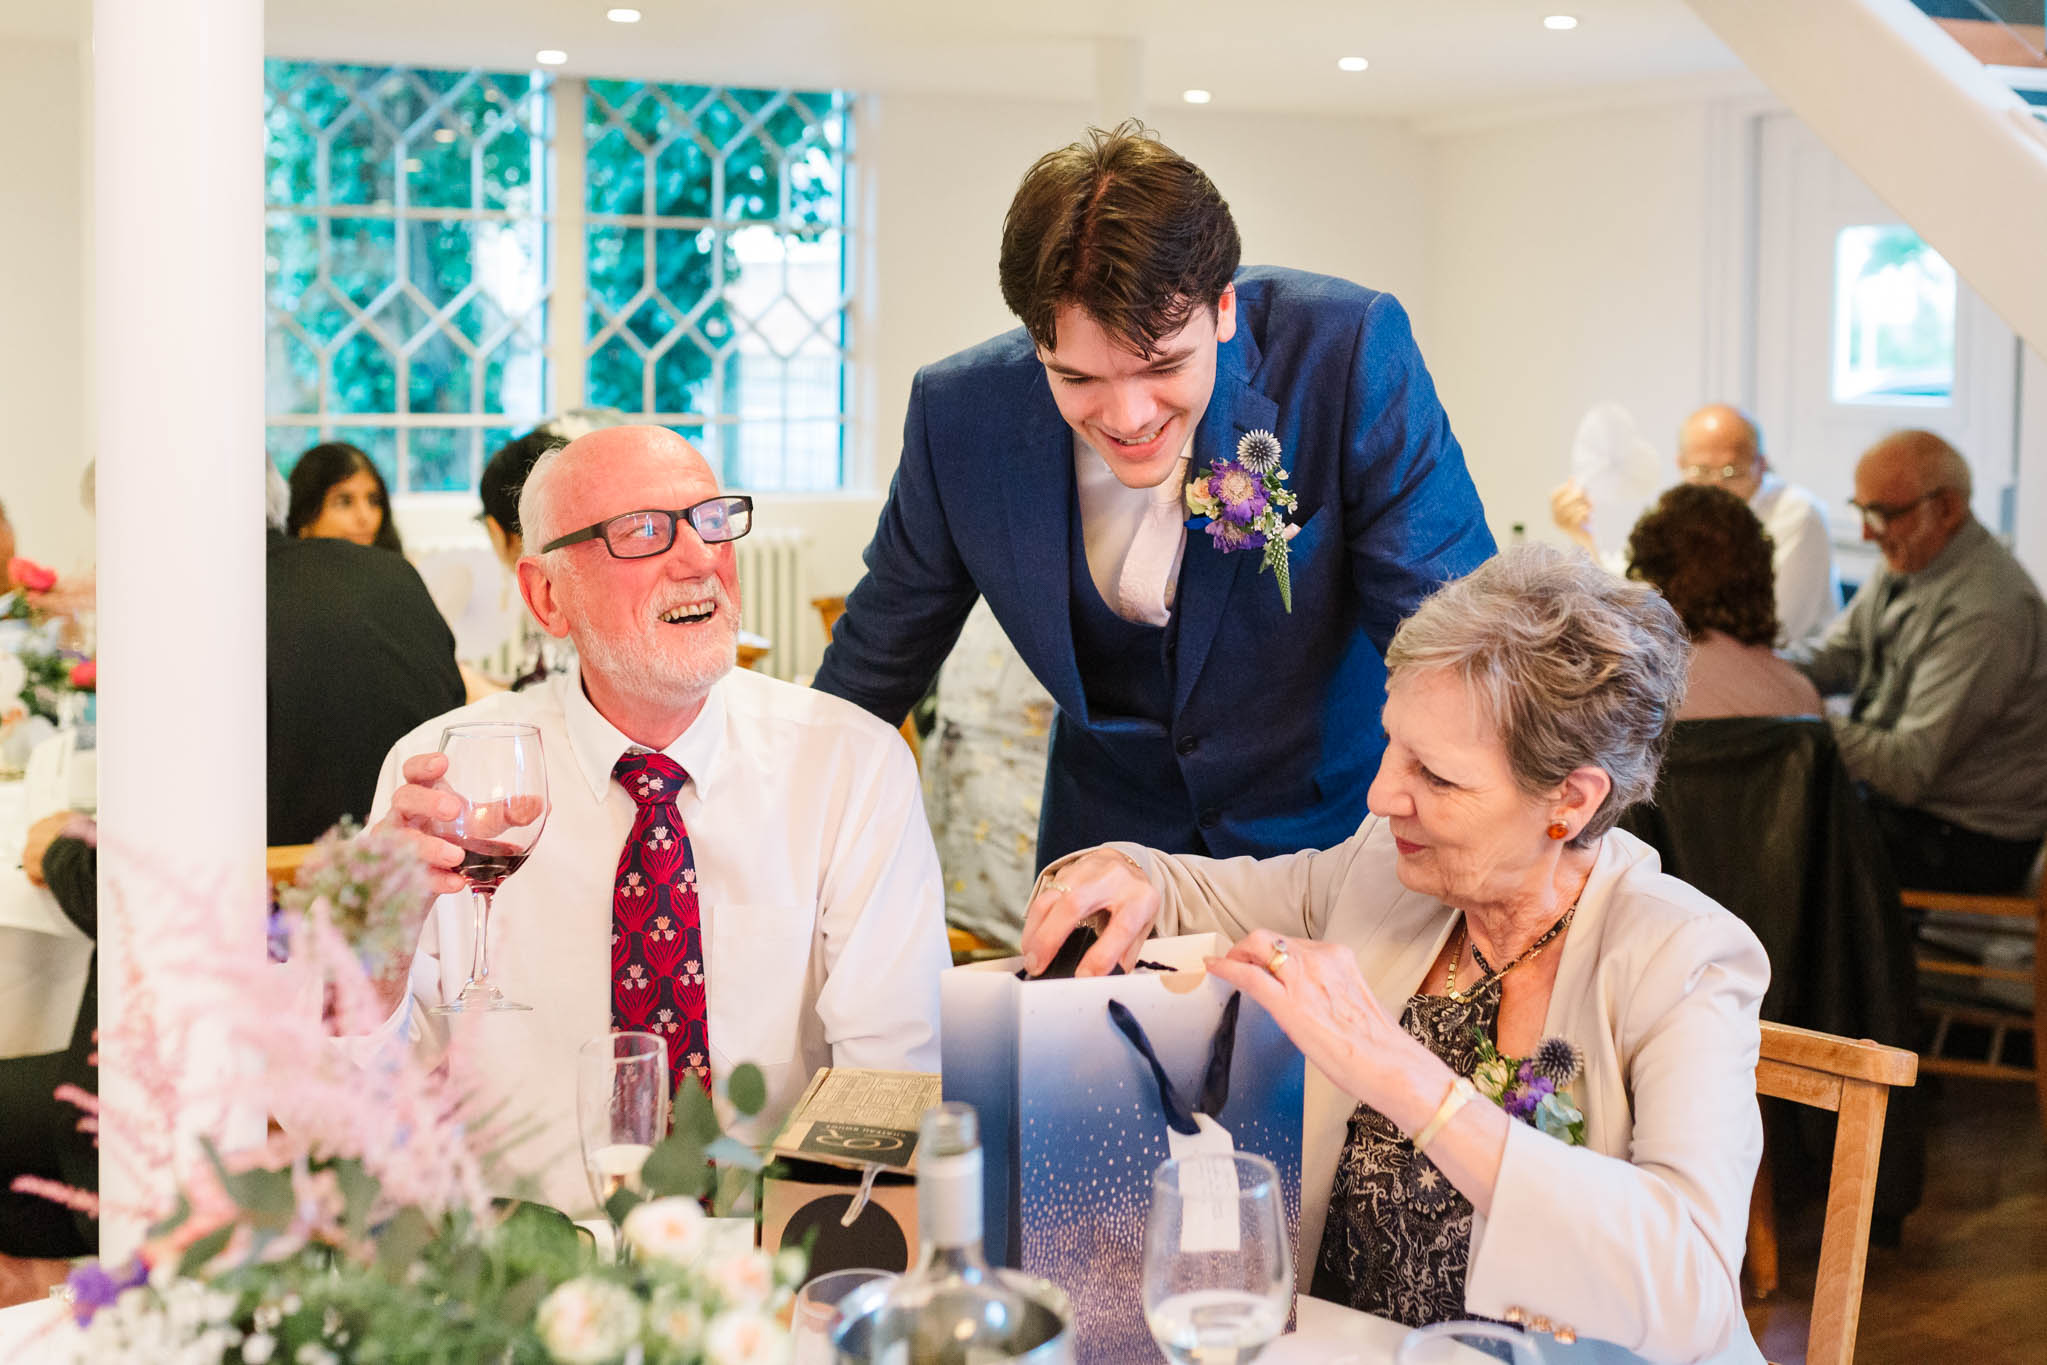 groom chatting and smiling with his parents